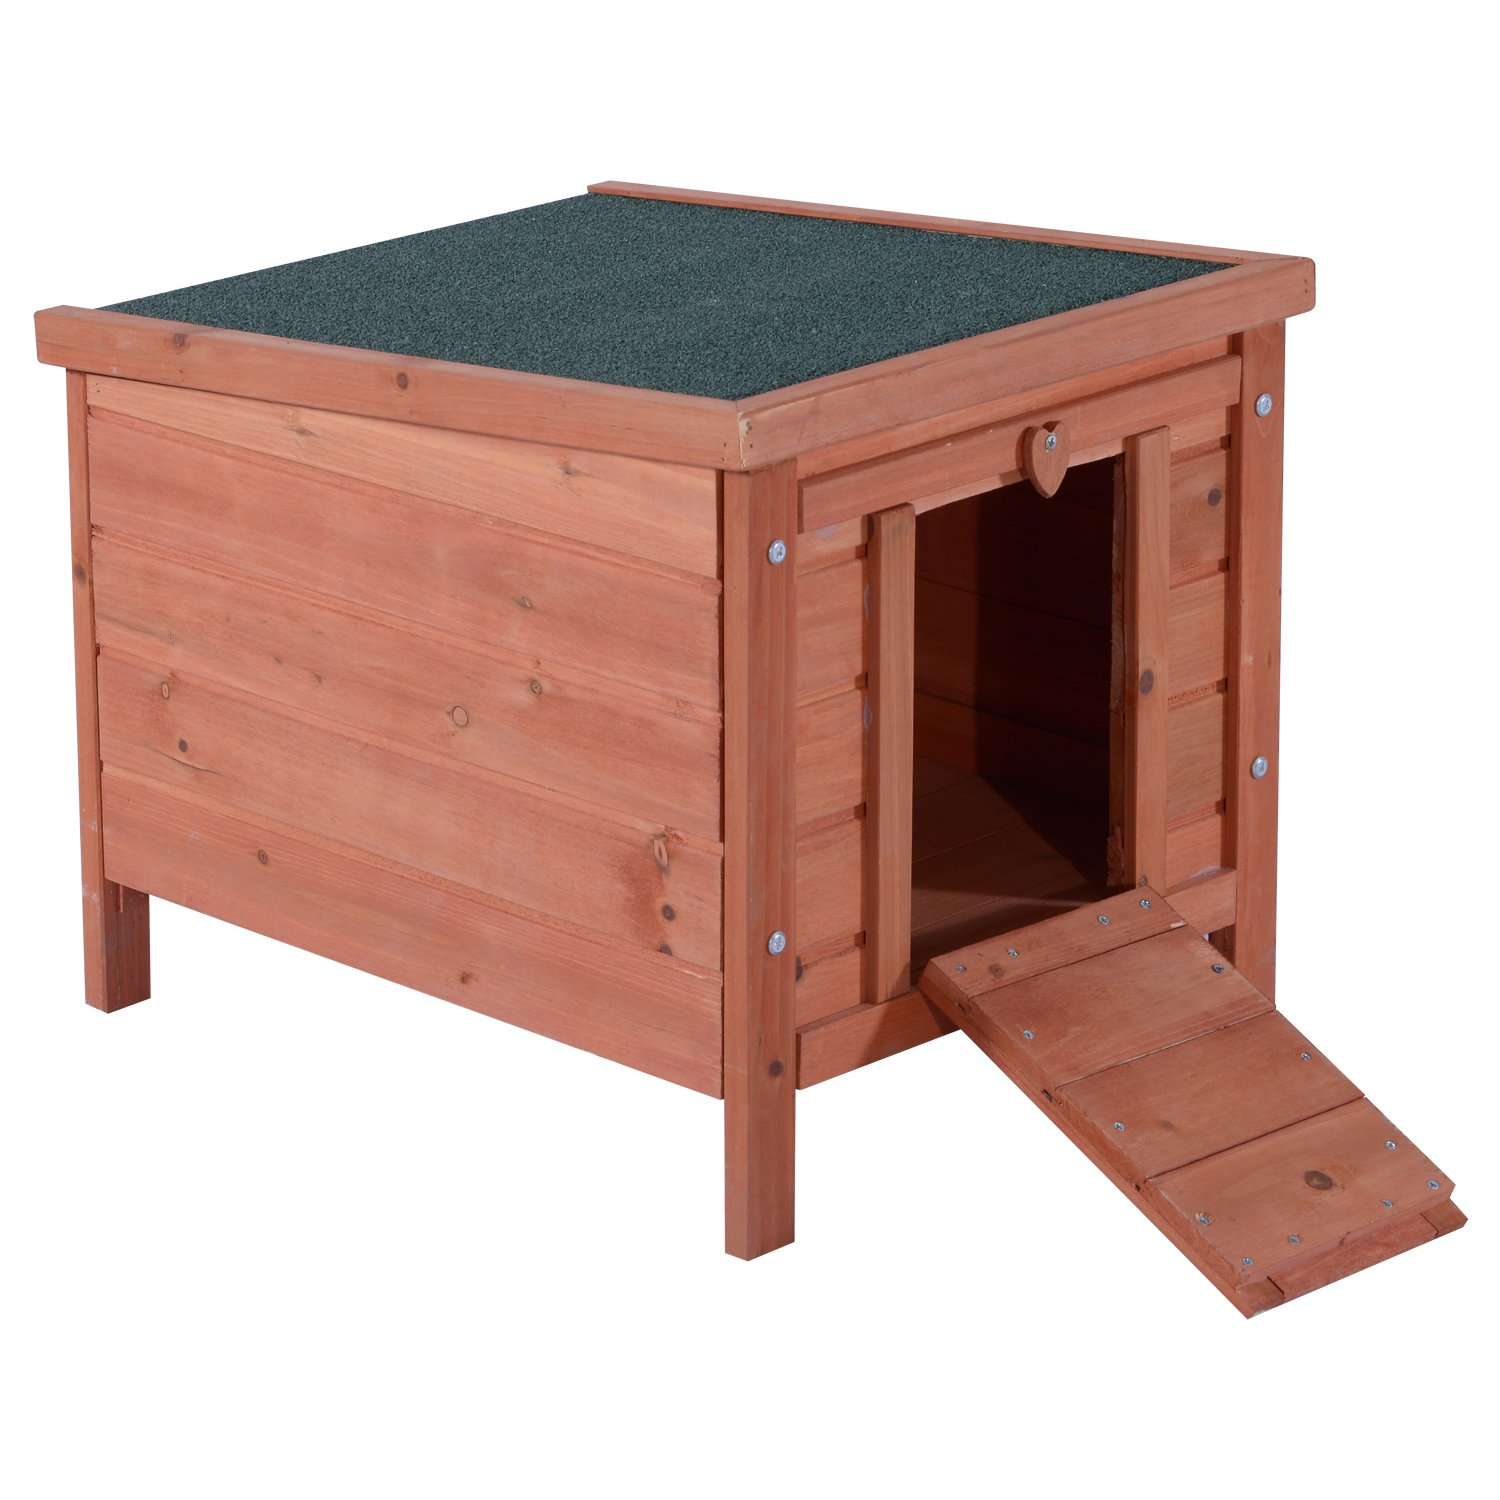 Lovupet Small Wooden Bunny Rabbit Hutch-Guinea Pig House-Small Animal House 0325